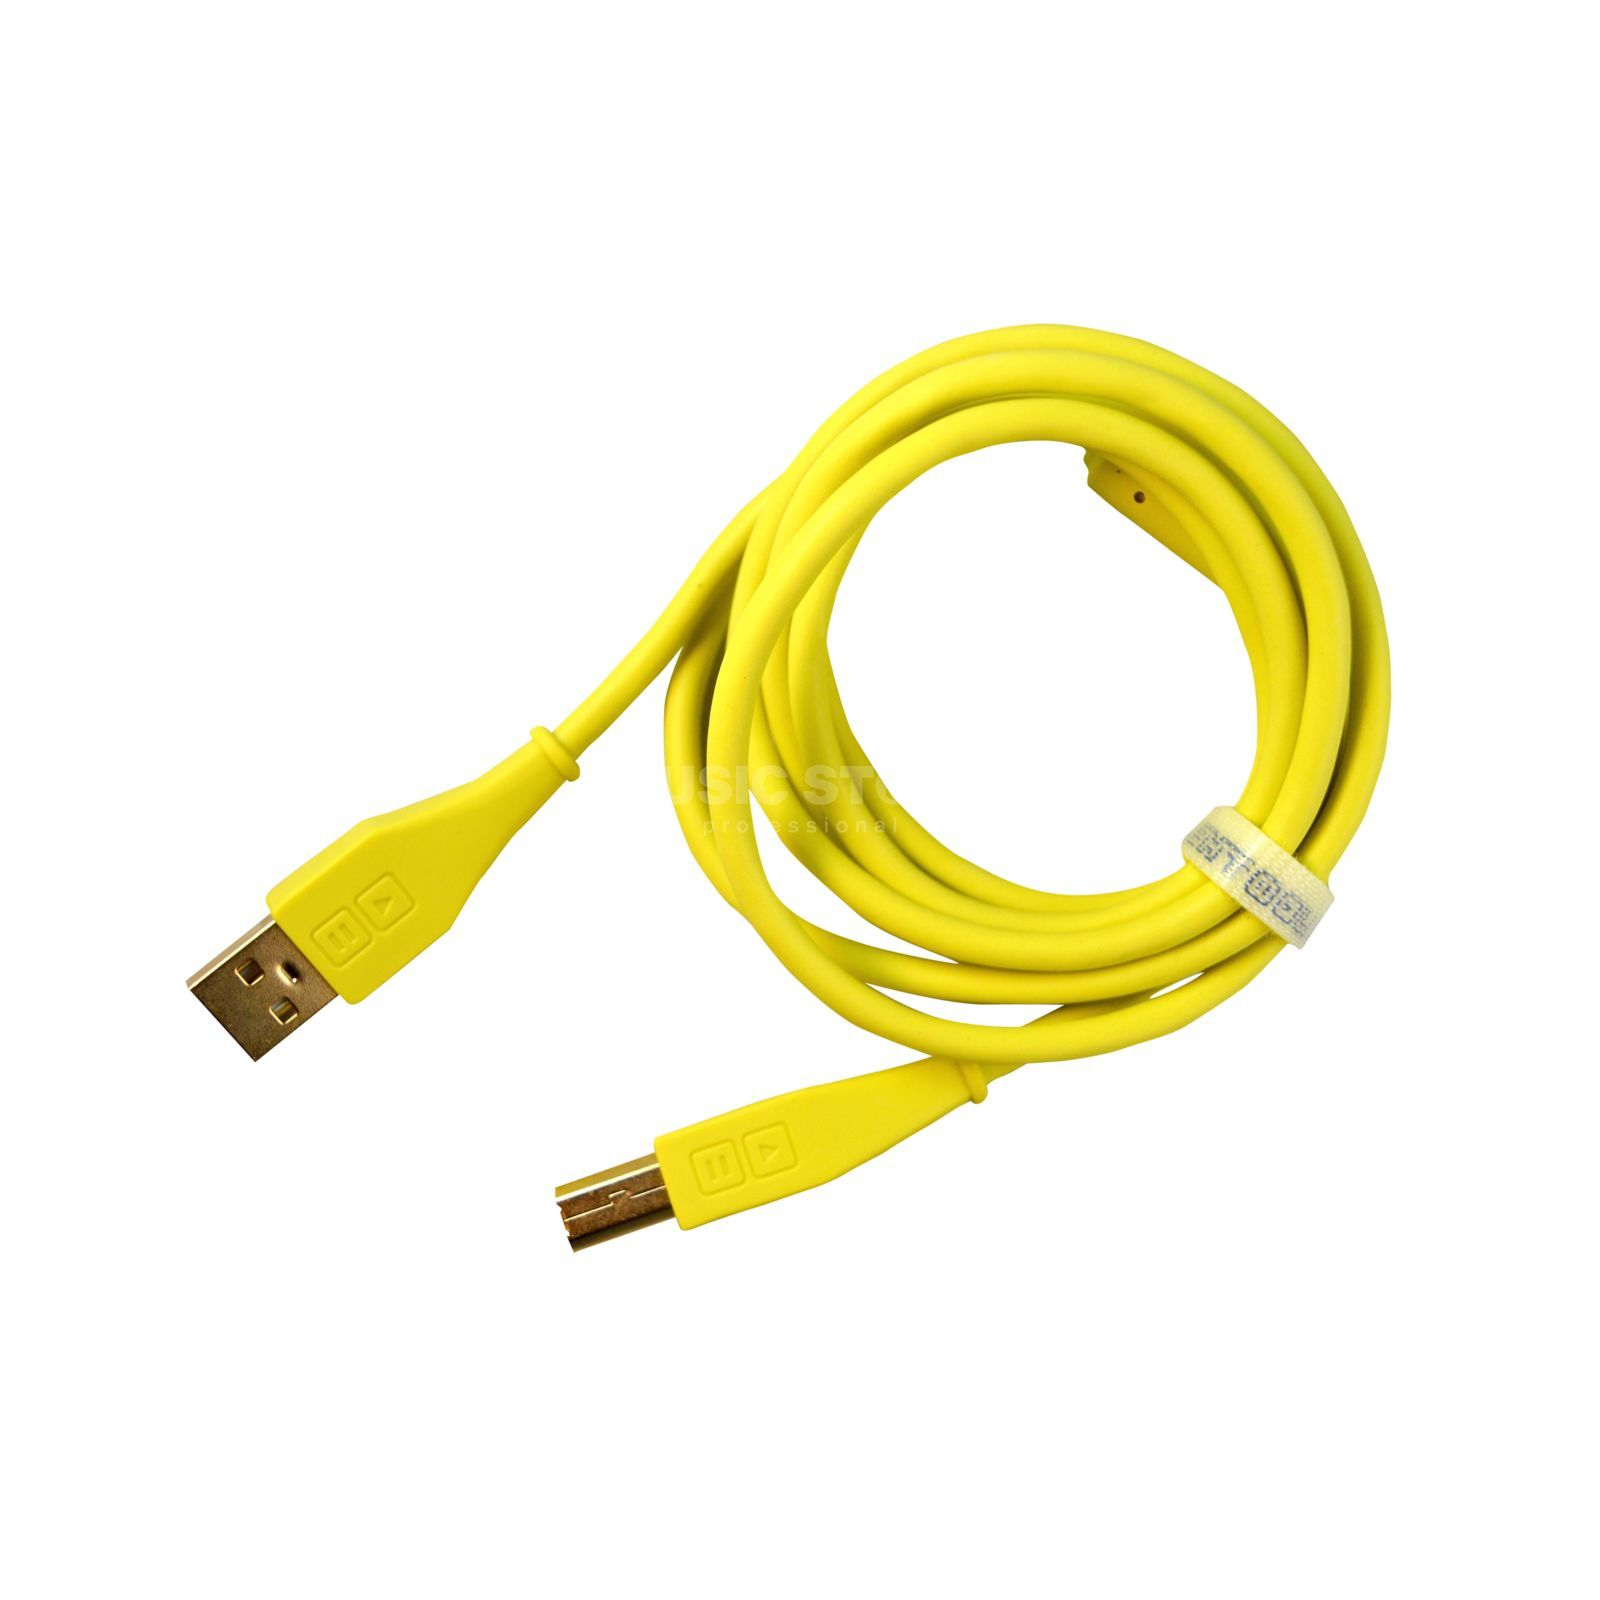 DJ TECHTOOLS DJTT USB Chroma Cable Green 1.5m, straight Zdjęcie produktu